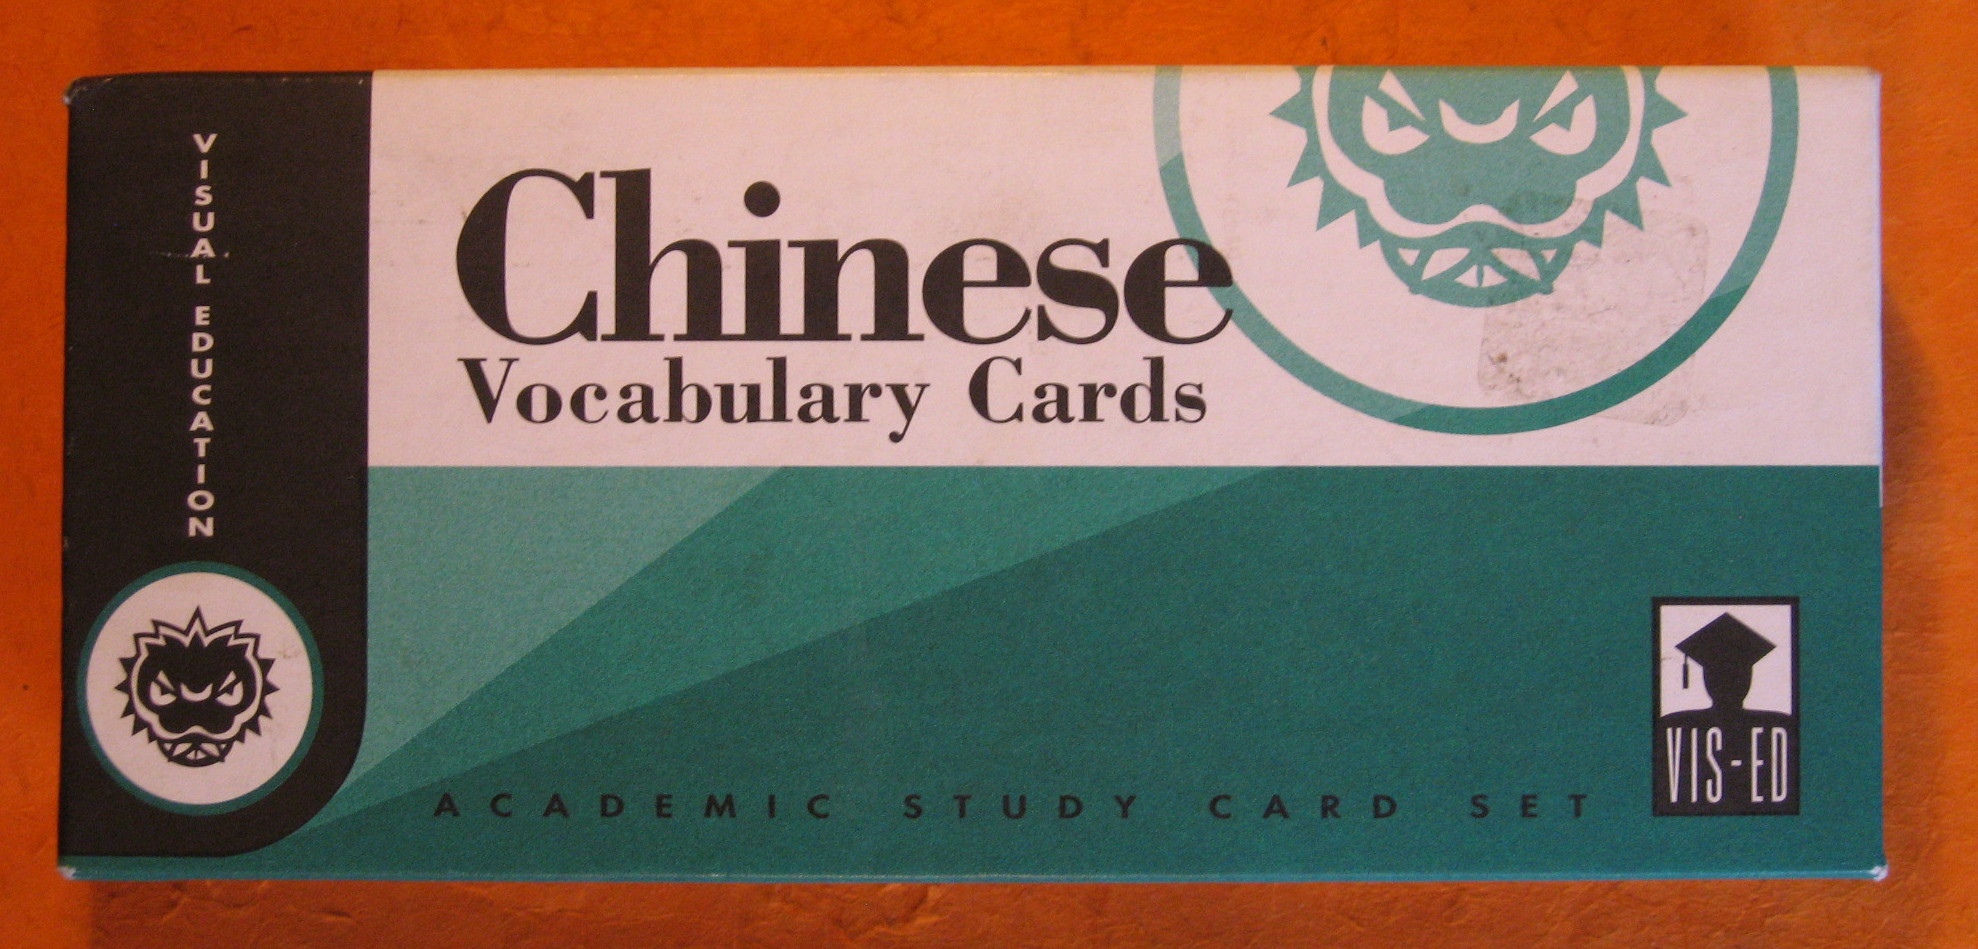 Image for Chinese Vocabulary Cards: Academic Study Card Set